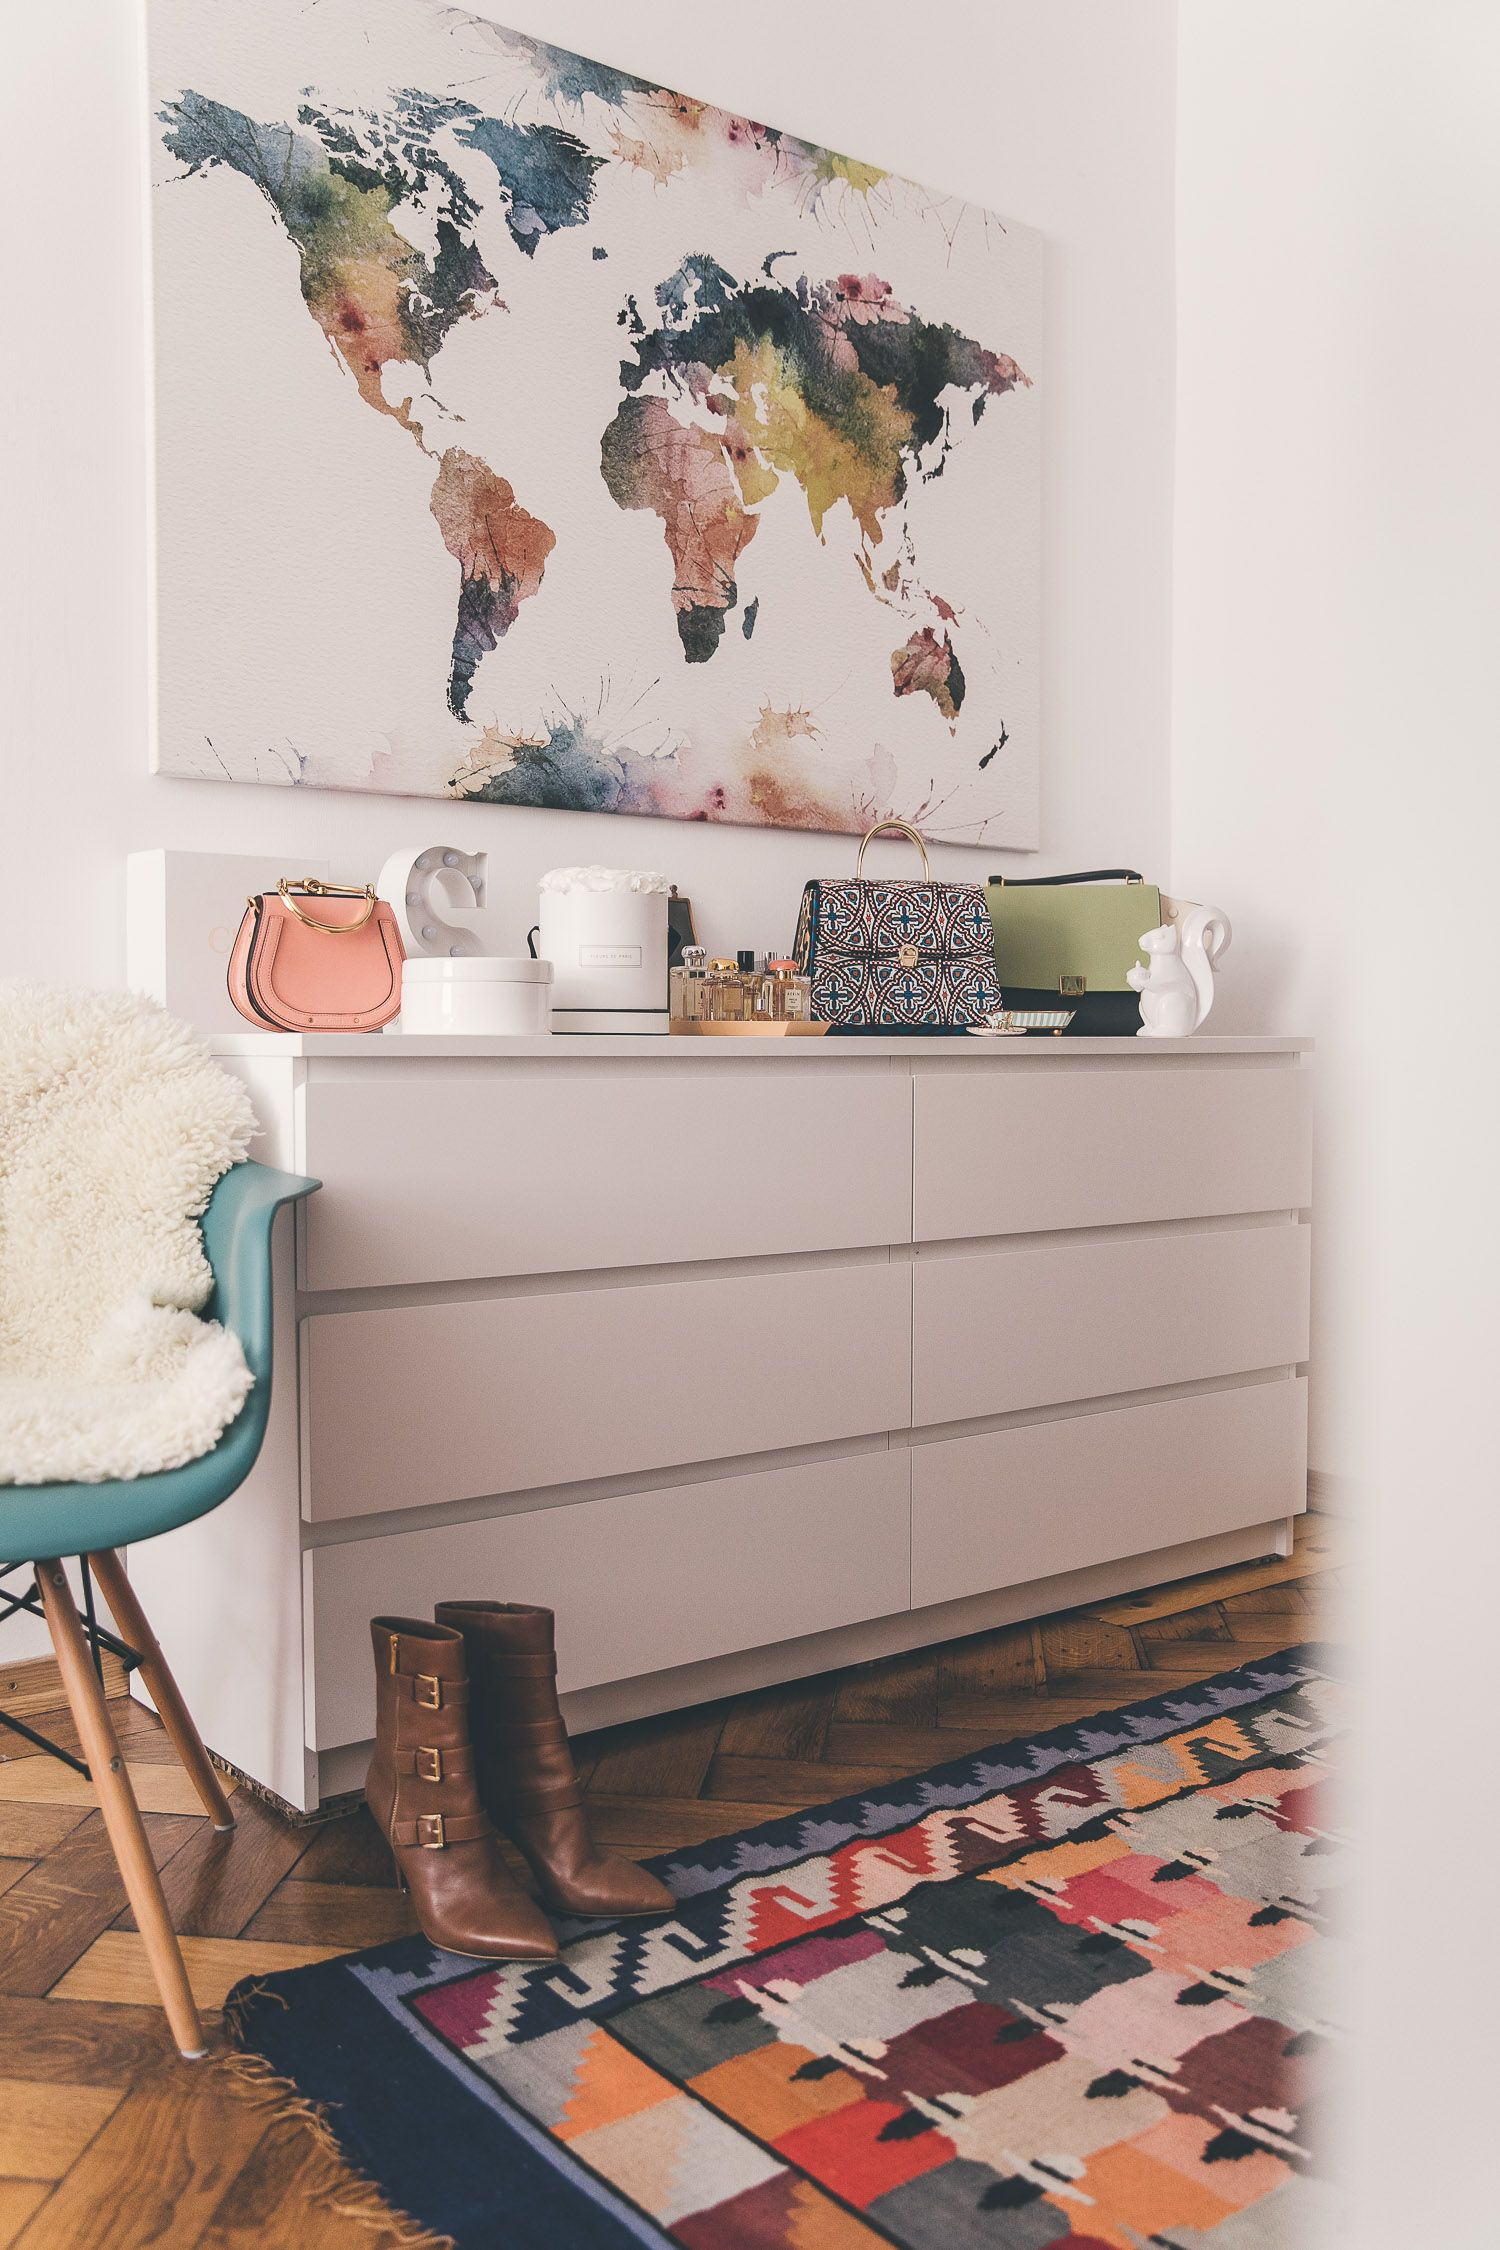 Deko Kommode Ein Schlafzimmer Update Teil Zwei Diy And Crafts Bedroom